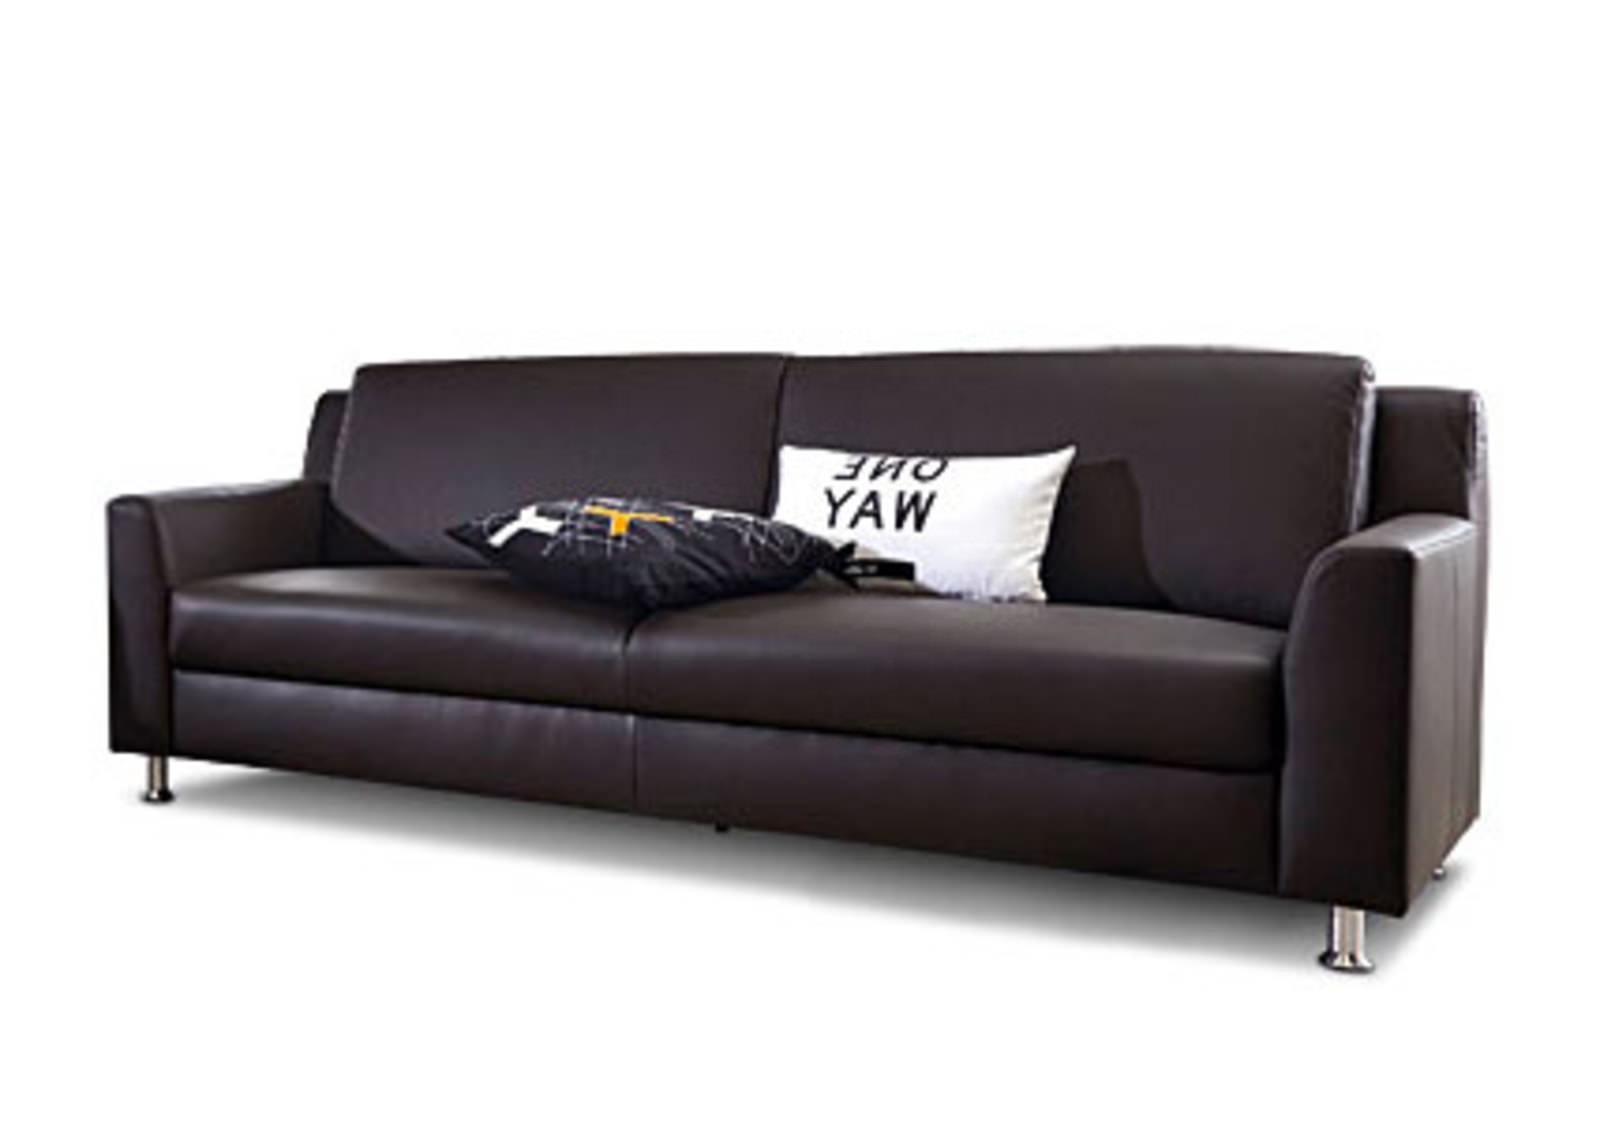 mondo sofa 2 sitzer gro online entdecken knuffmann ihr m belhaus. Black Bedroom Furniture Sets. Home Design Ideas